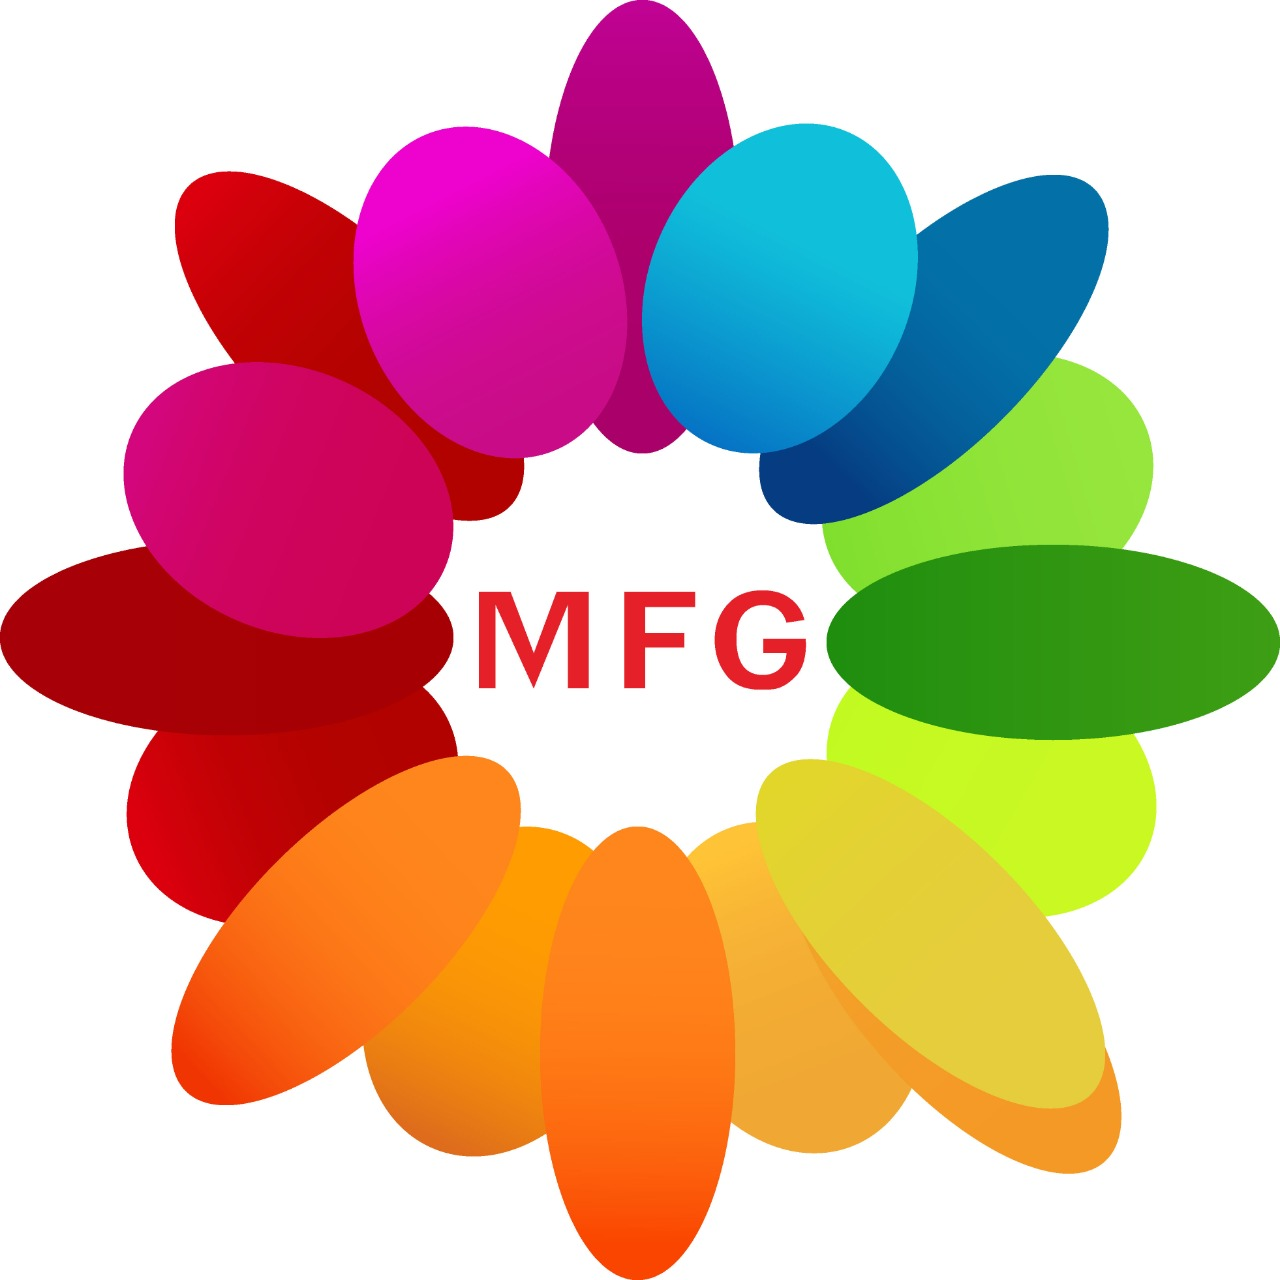 Bunch of 12 red roses with half kg chocovanilla cake with bottle of wine